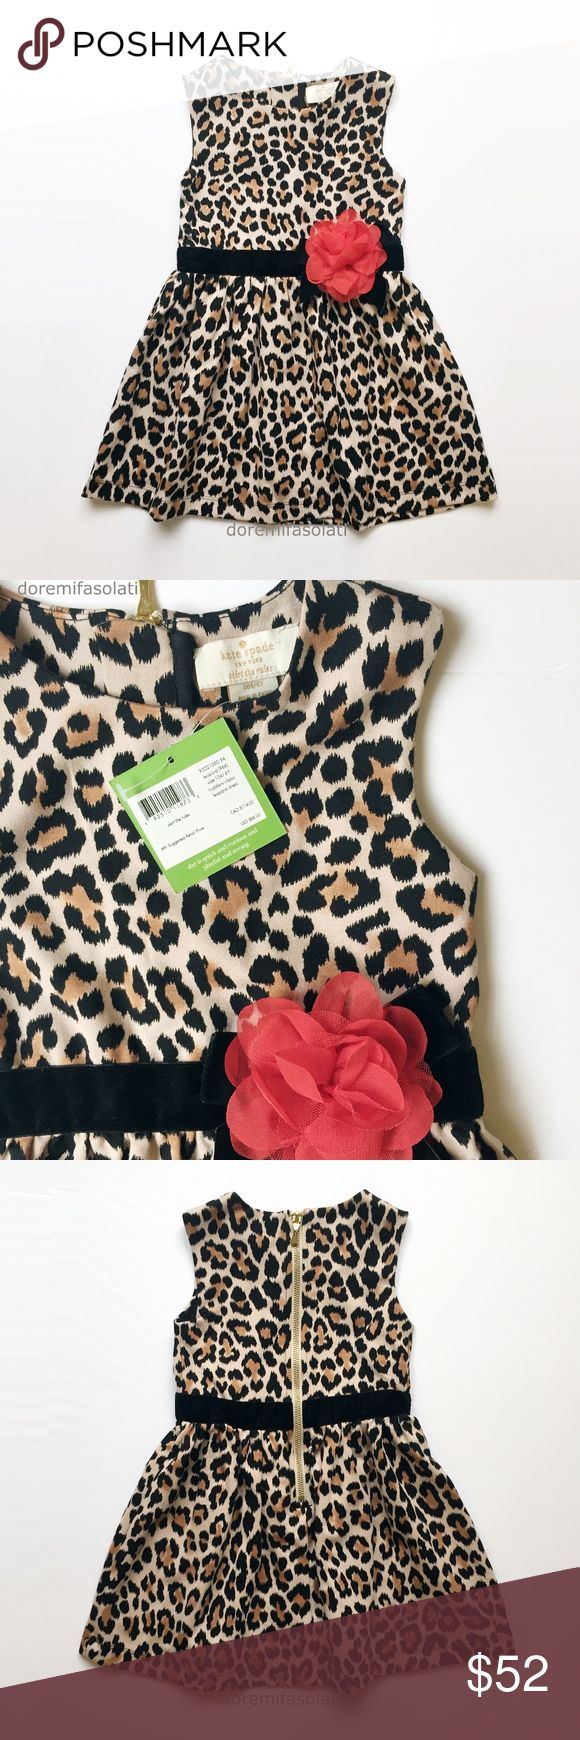 "KATE SPADE LEOPARD mini dress top toddler girls 4Y KATE SPADE new york skirt the rules  classic  leopard print. organza rosette. luxury gold hardware.  "" she is quick and curious and playful and strong "".  new with tags, pet/smoke free.  laid flat:  chest:  shoulders: 10.75"" shoulders: 9.75 shoulder to hem: 21""  party occasion everyday casual school birthday special fancy animal faux cheetah cat fur velvet belted belt red flower floral winter holiday toddler baby babies little kate spade…"